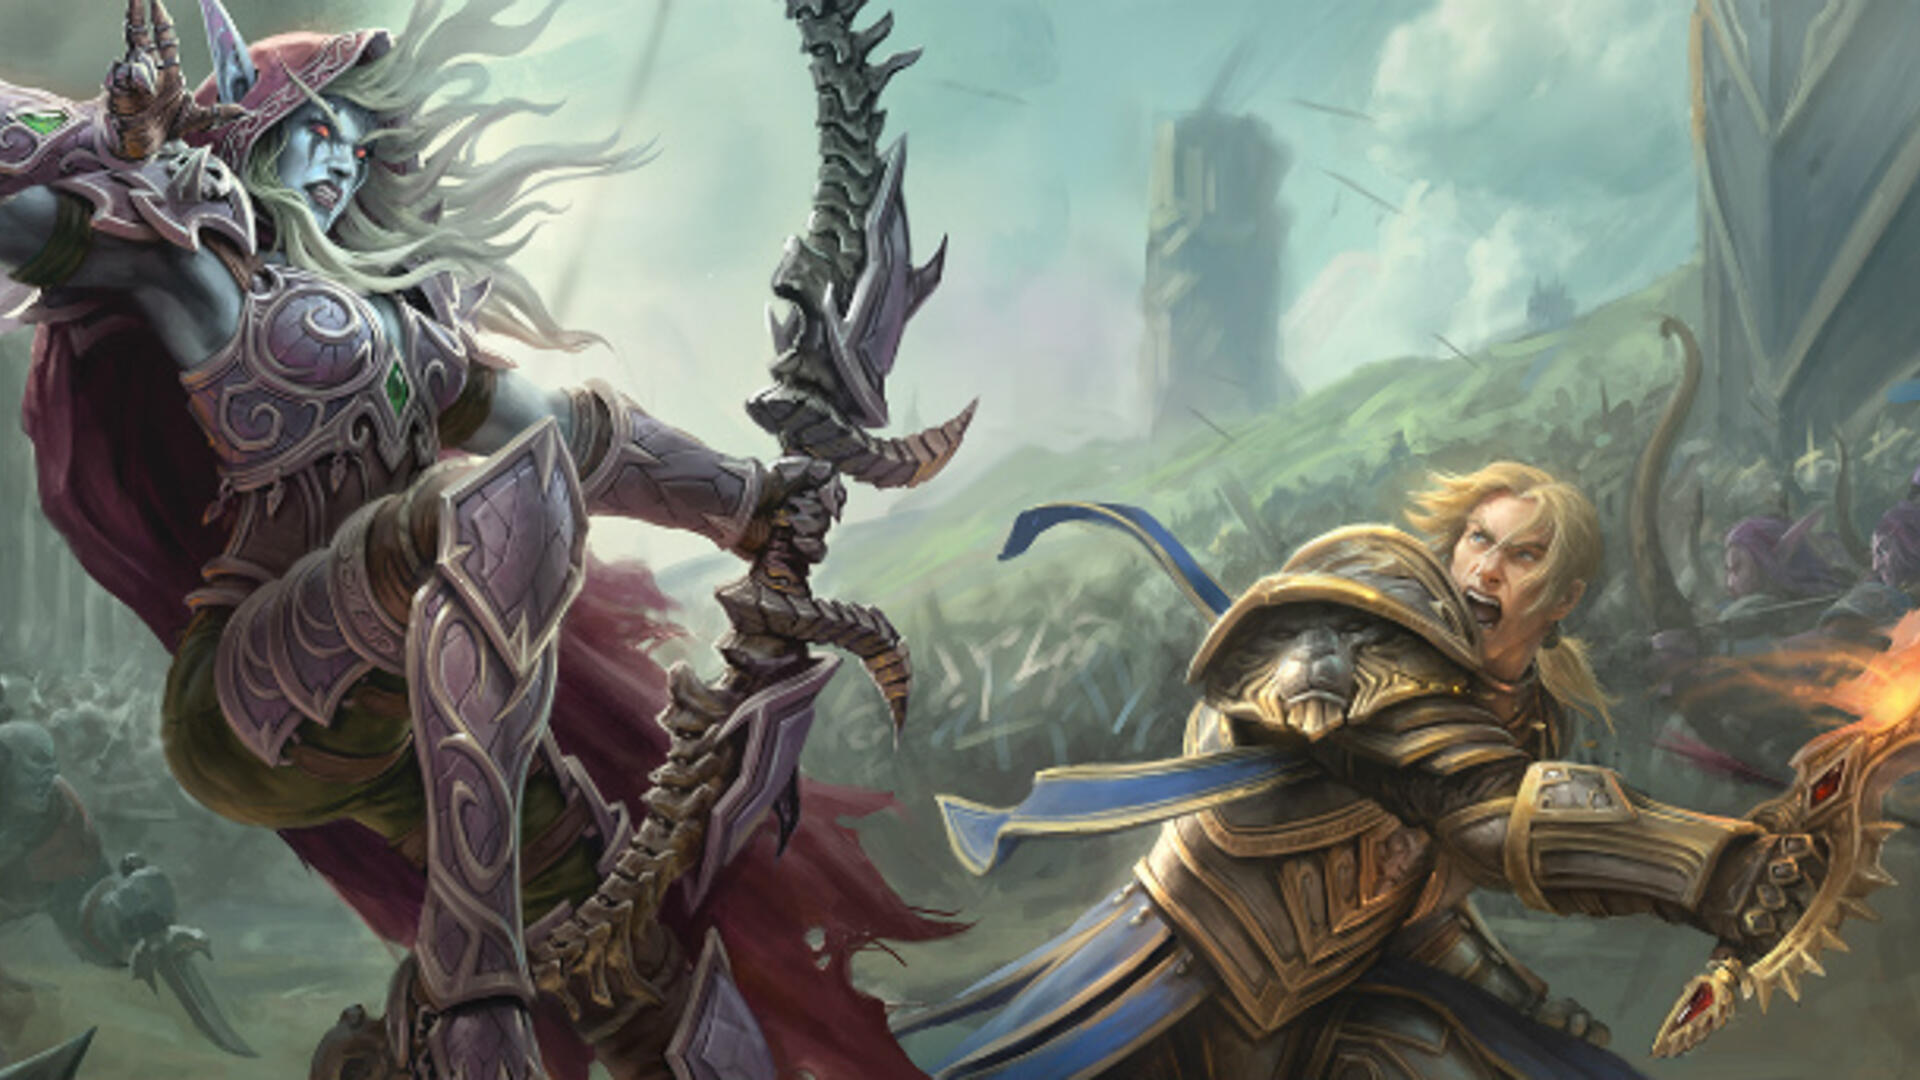 WoW 8 0 Is a Rough Start for Battle for Azeroth | USgamer